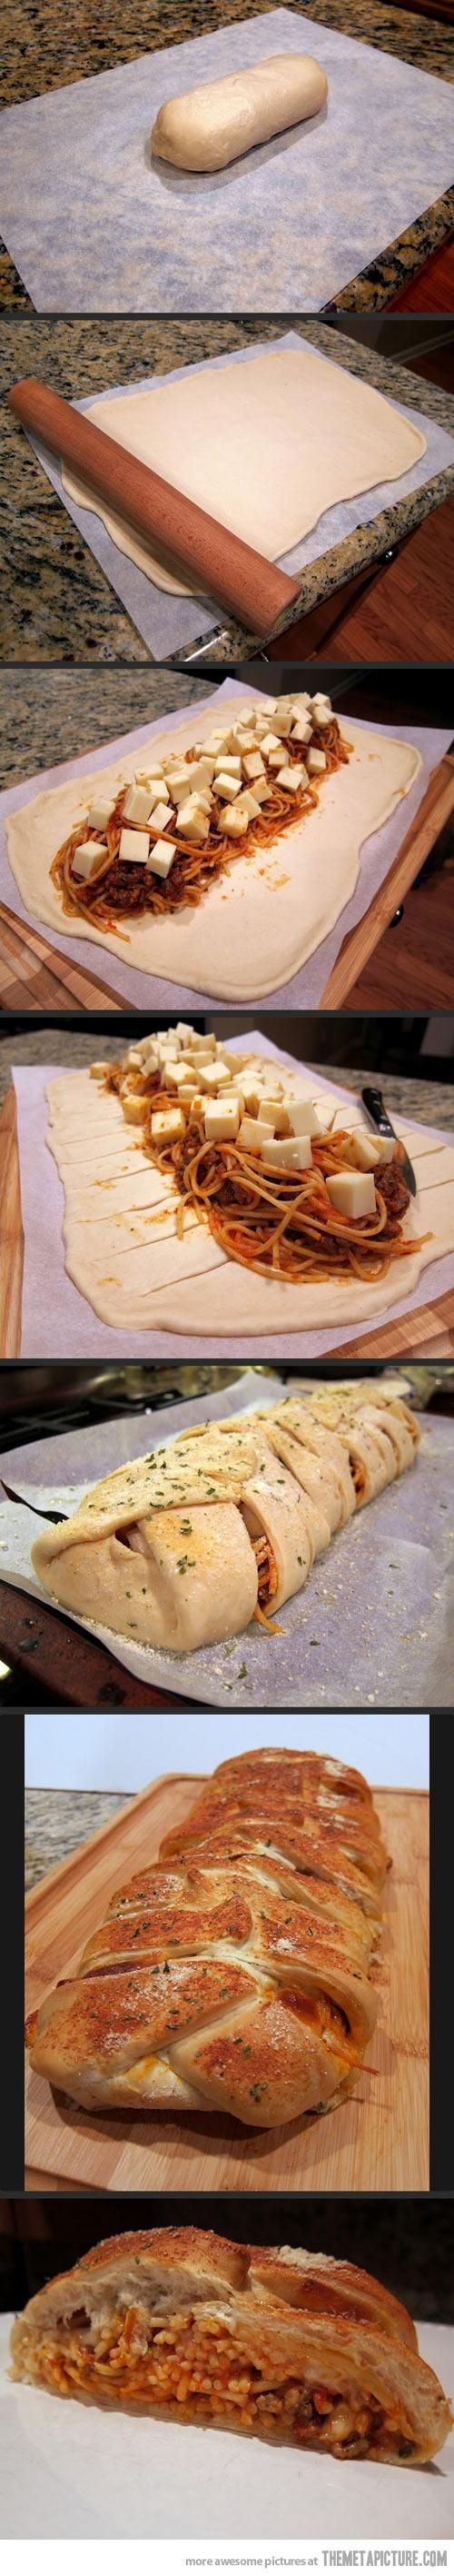 This sounds amazing.  Ingredients/Instructions: http://www.daydreamkitchen.com/2012/12/baked-spaghetti-in-garlic-bread/